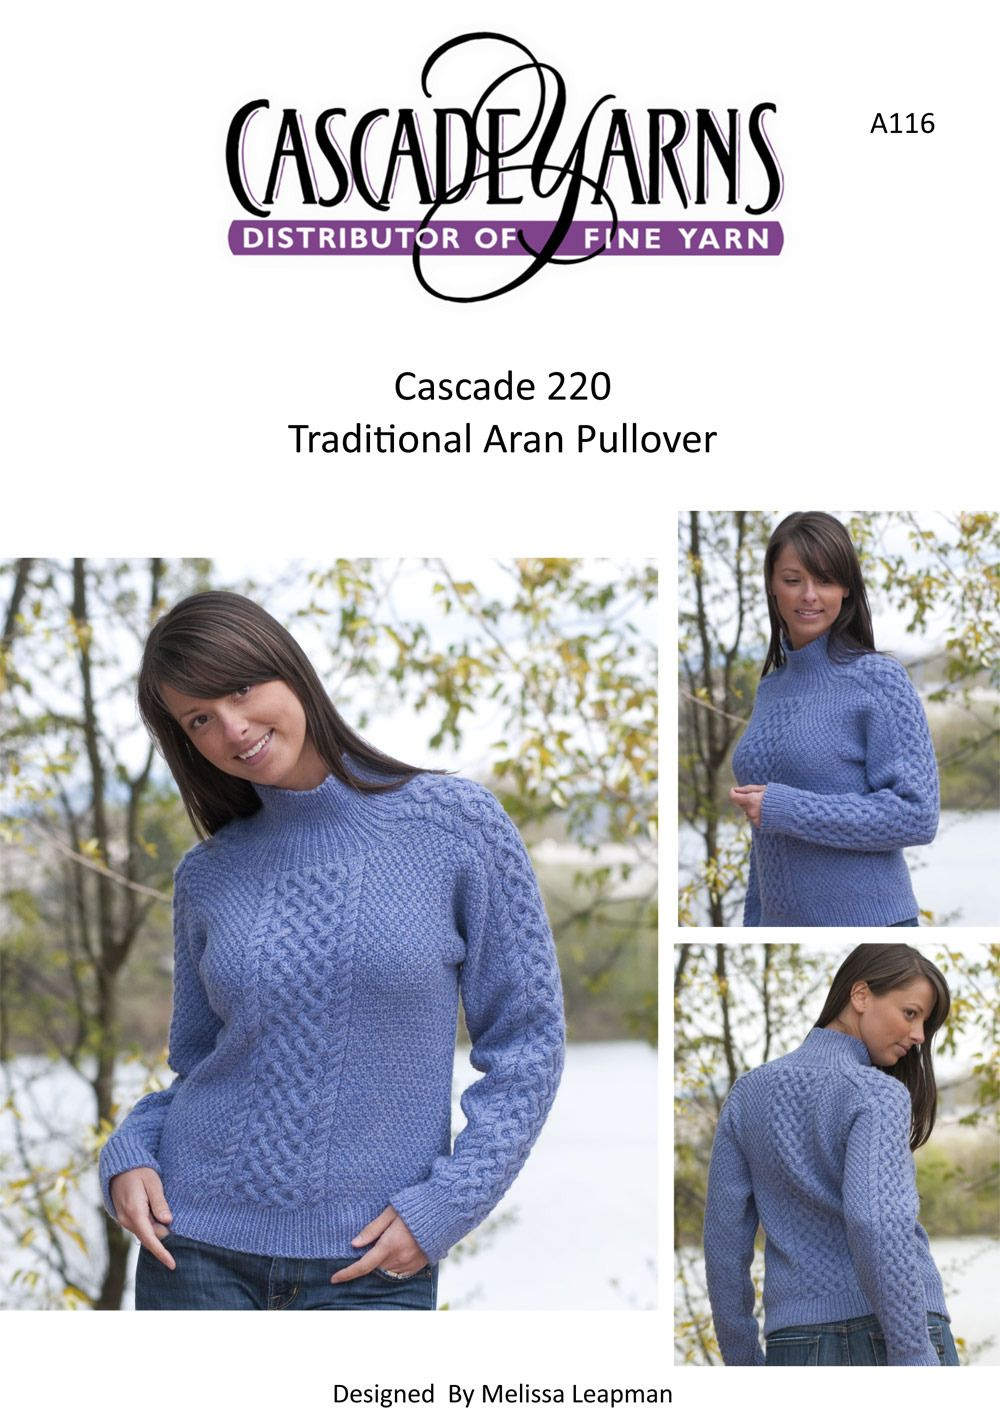 Traditional Aran Pullover in Cascade 220 - A116   Knitting Patterns ...